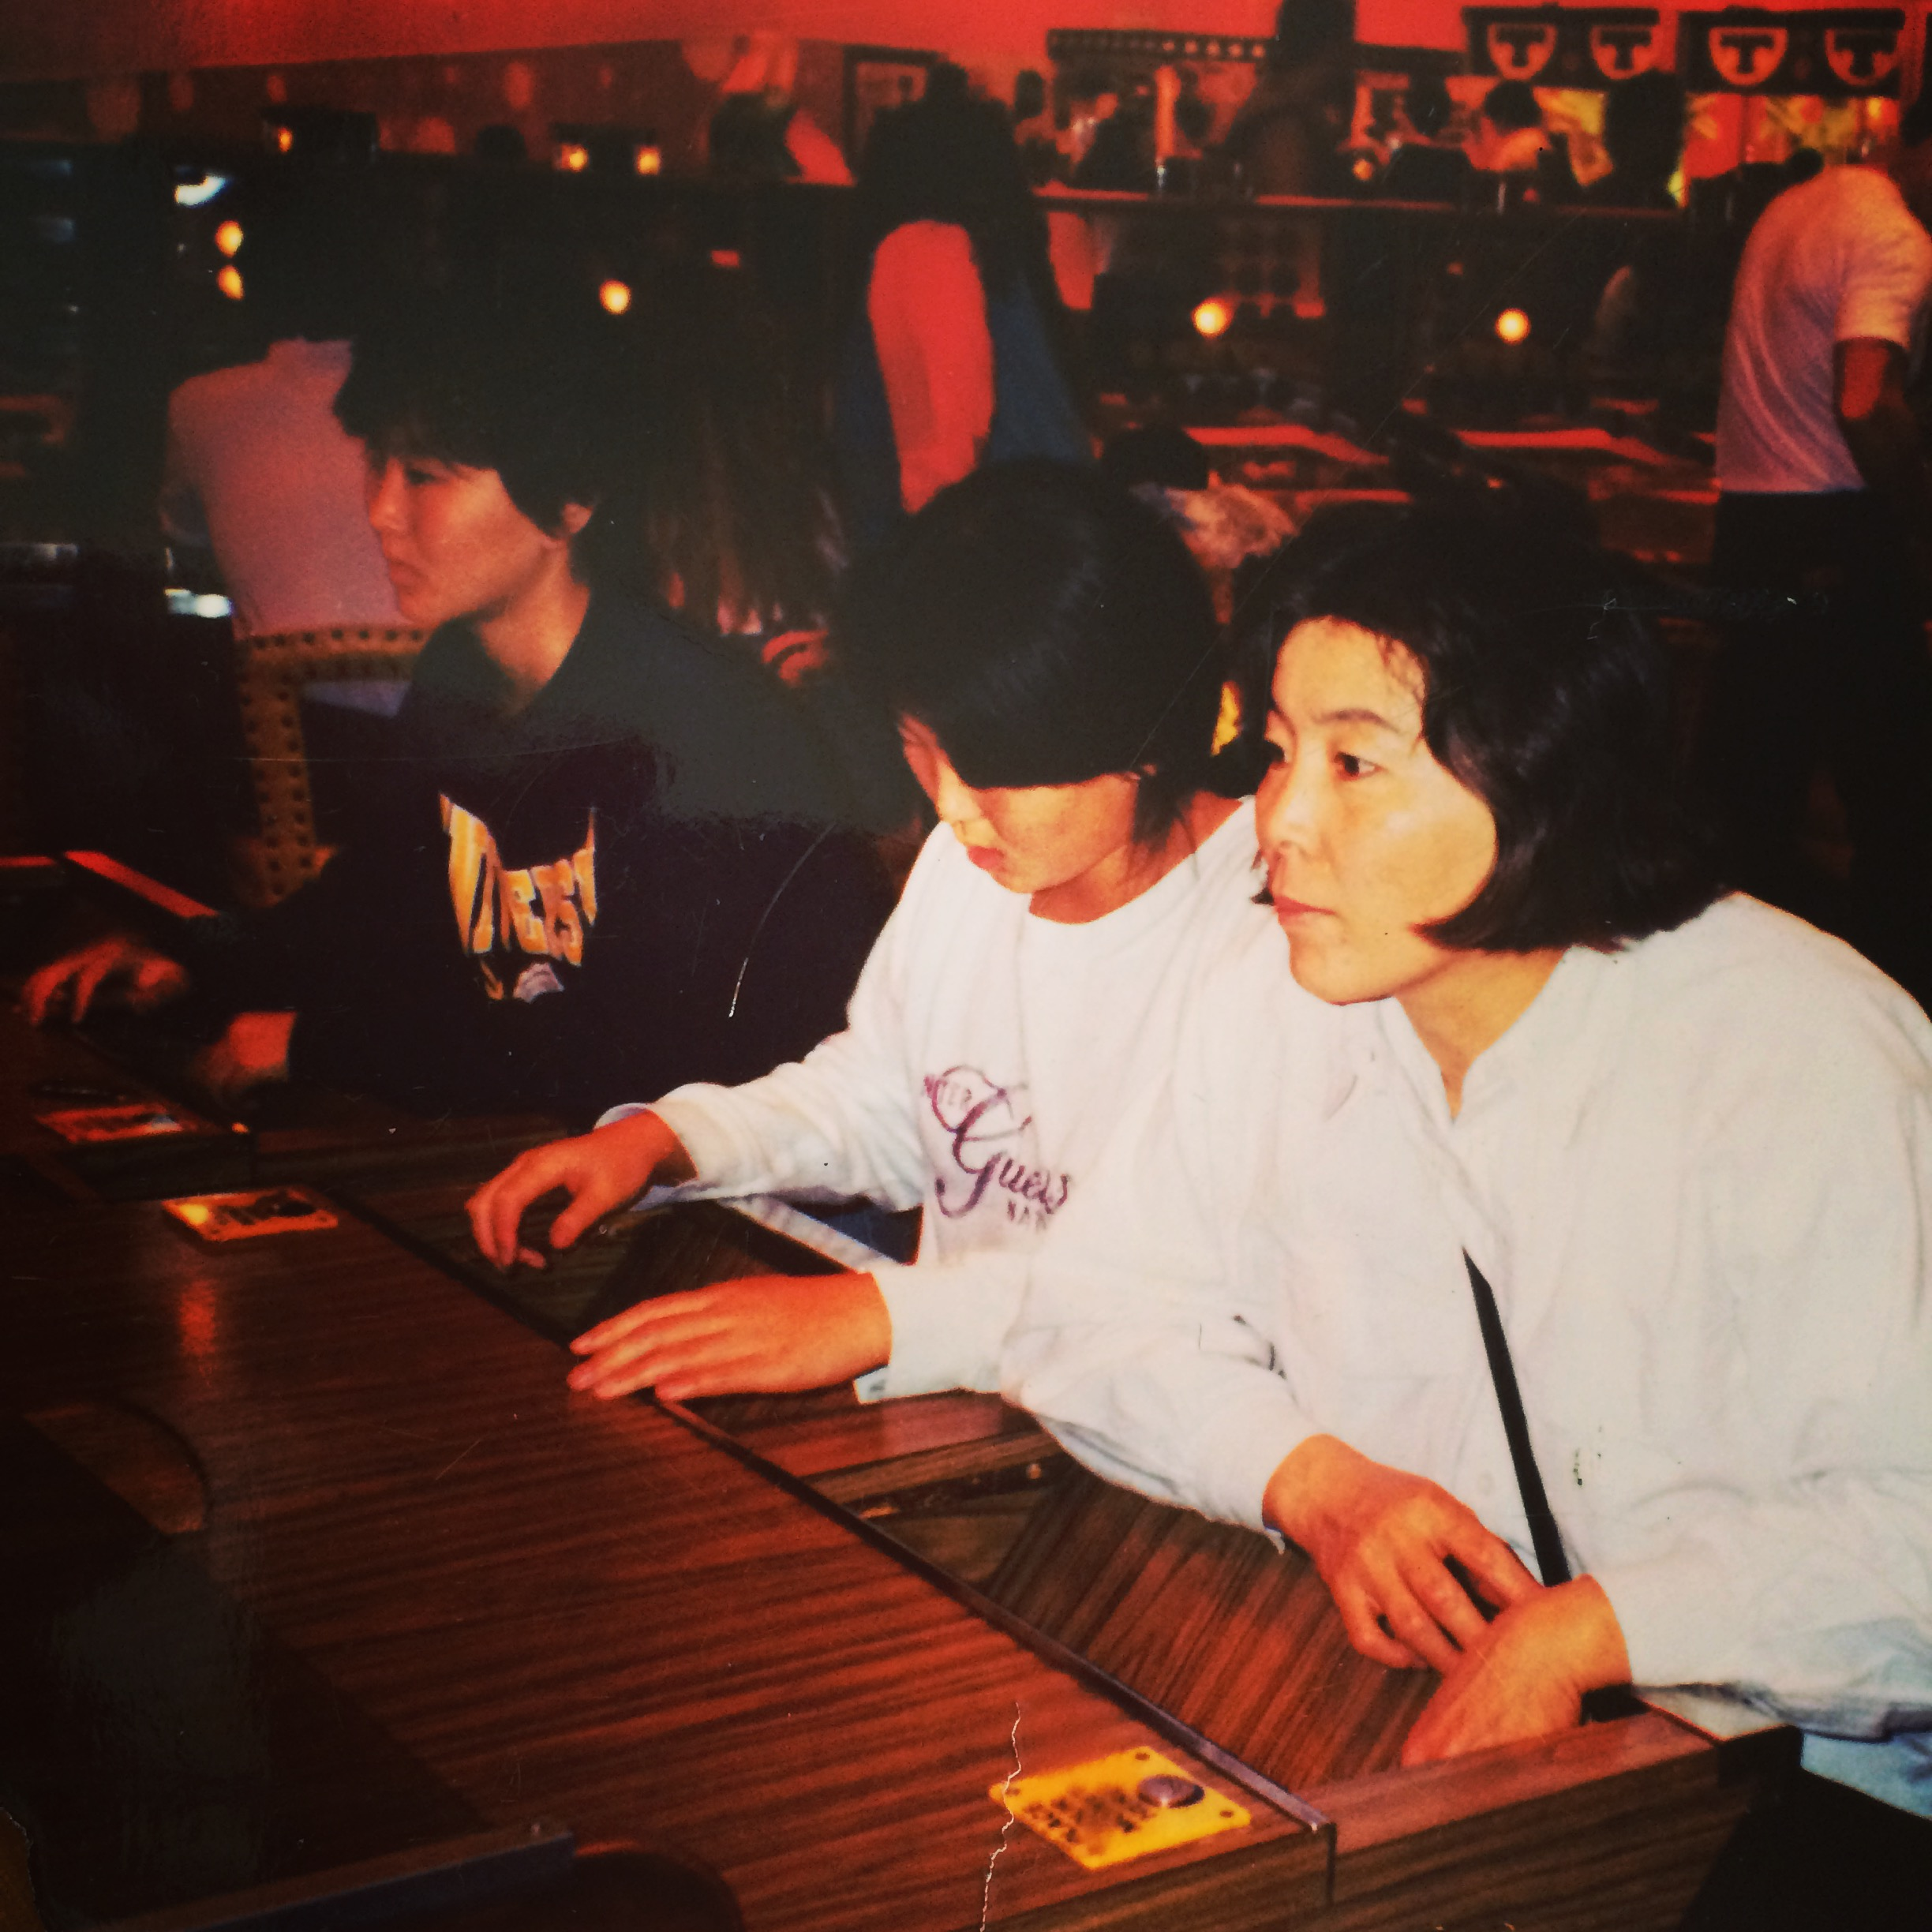 That's mom, me, and my sister playing penny slots